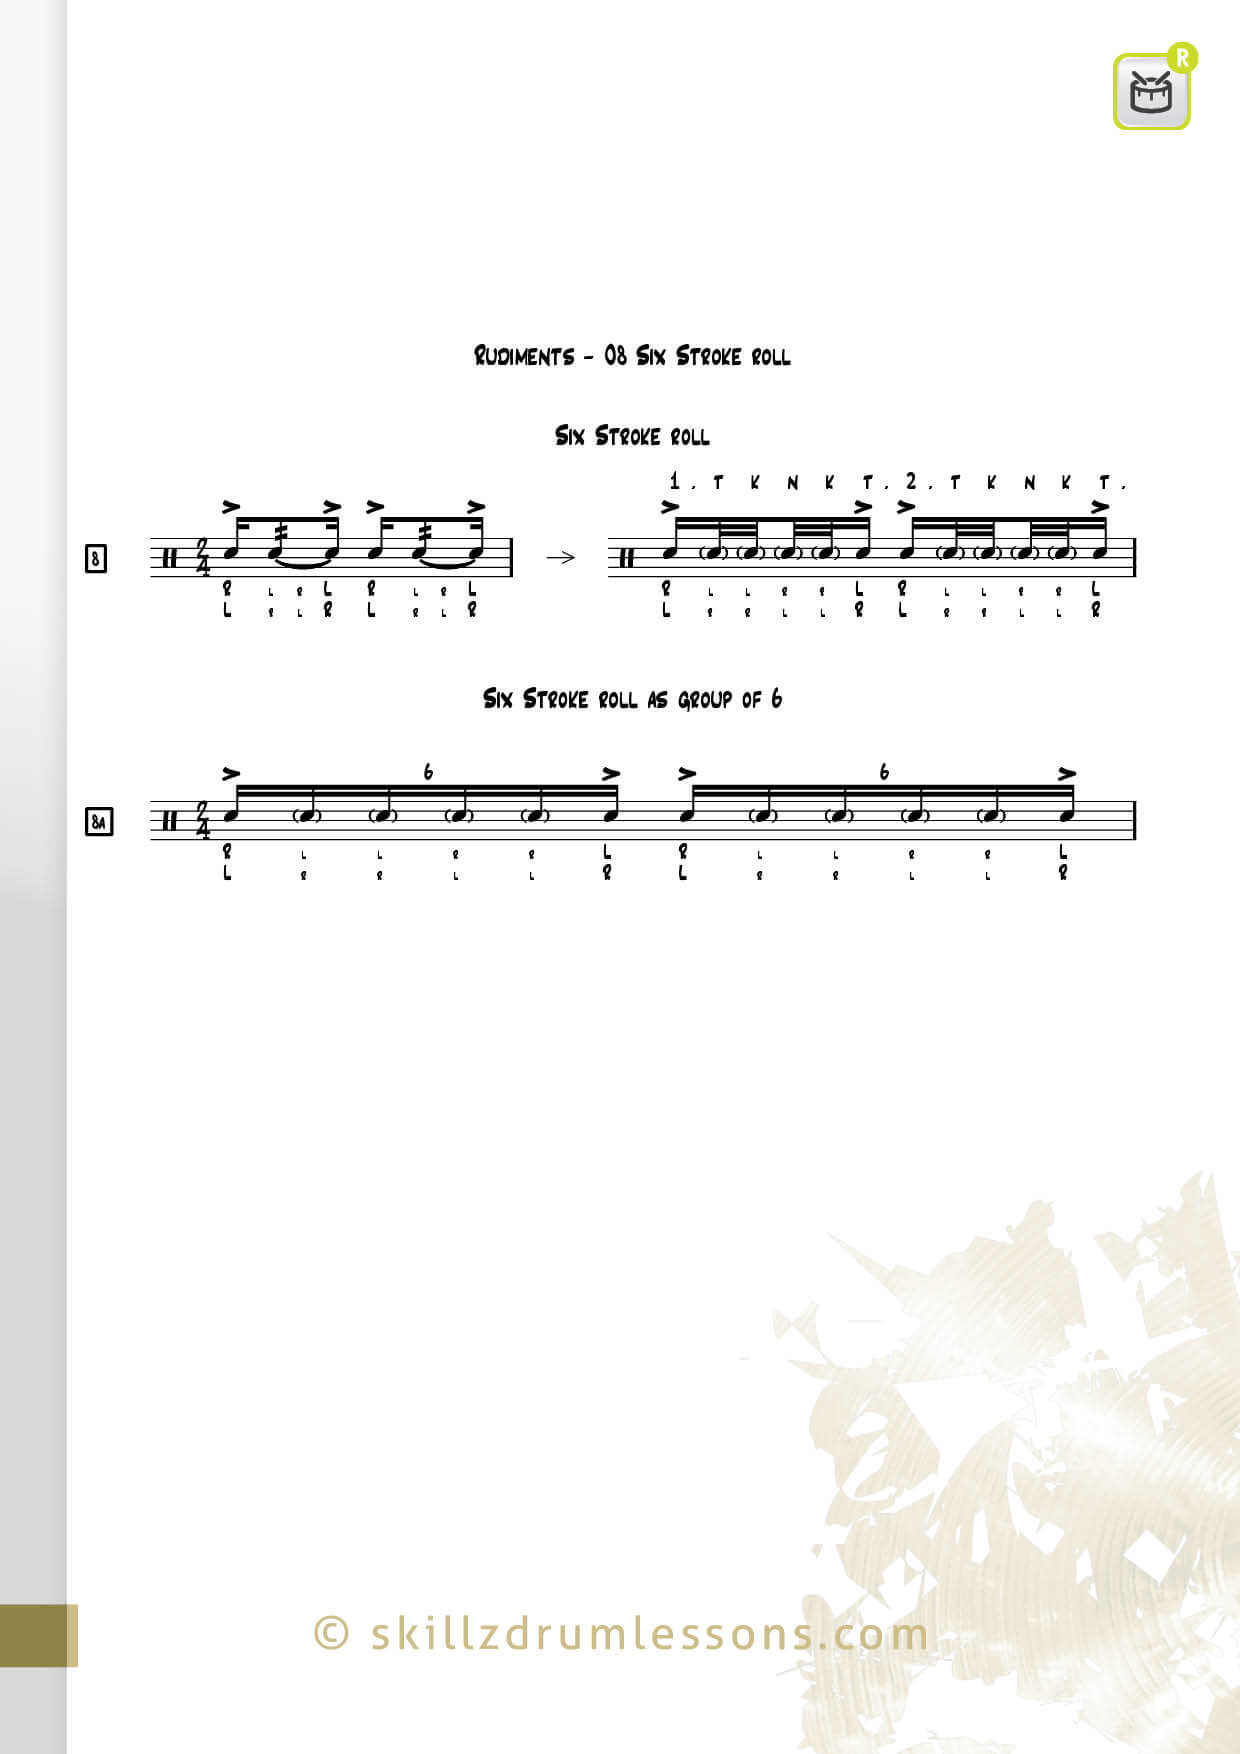 This is an image of the Official 40 Essential P.A.S. Rudiments #8 The Six Stroke Roll by Skillz Drum Lessons